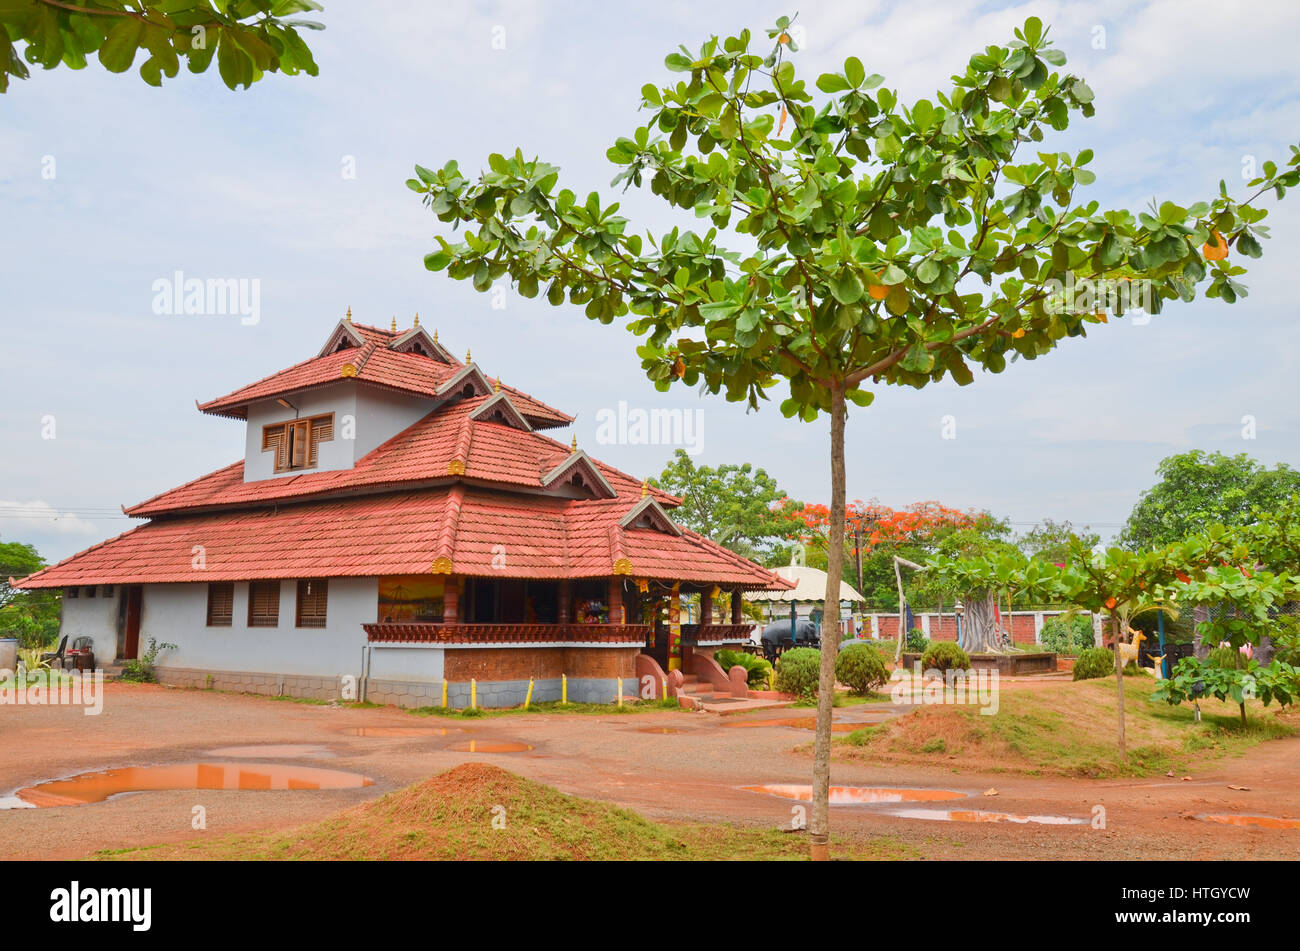 Traditional Architecture Of A Tiled Roof House In Kerala Using